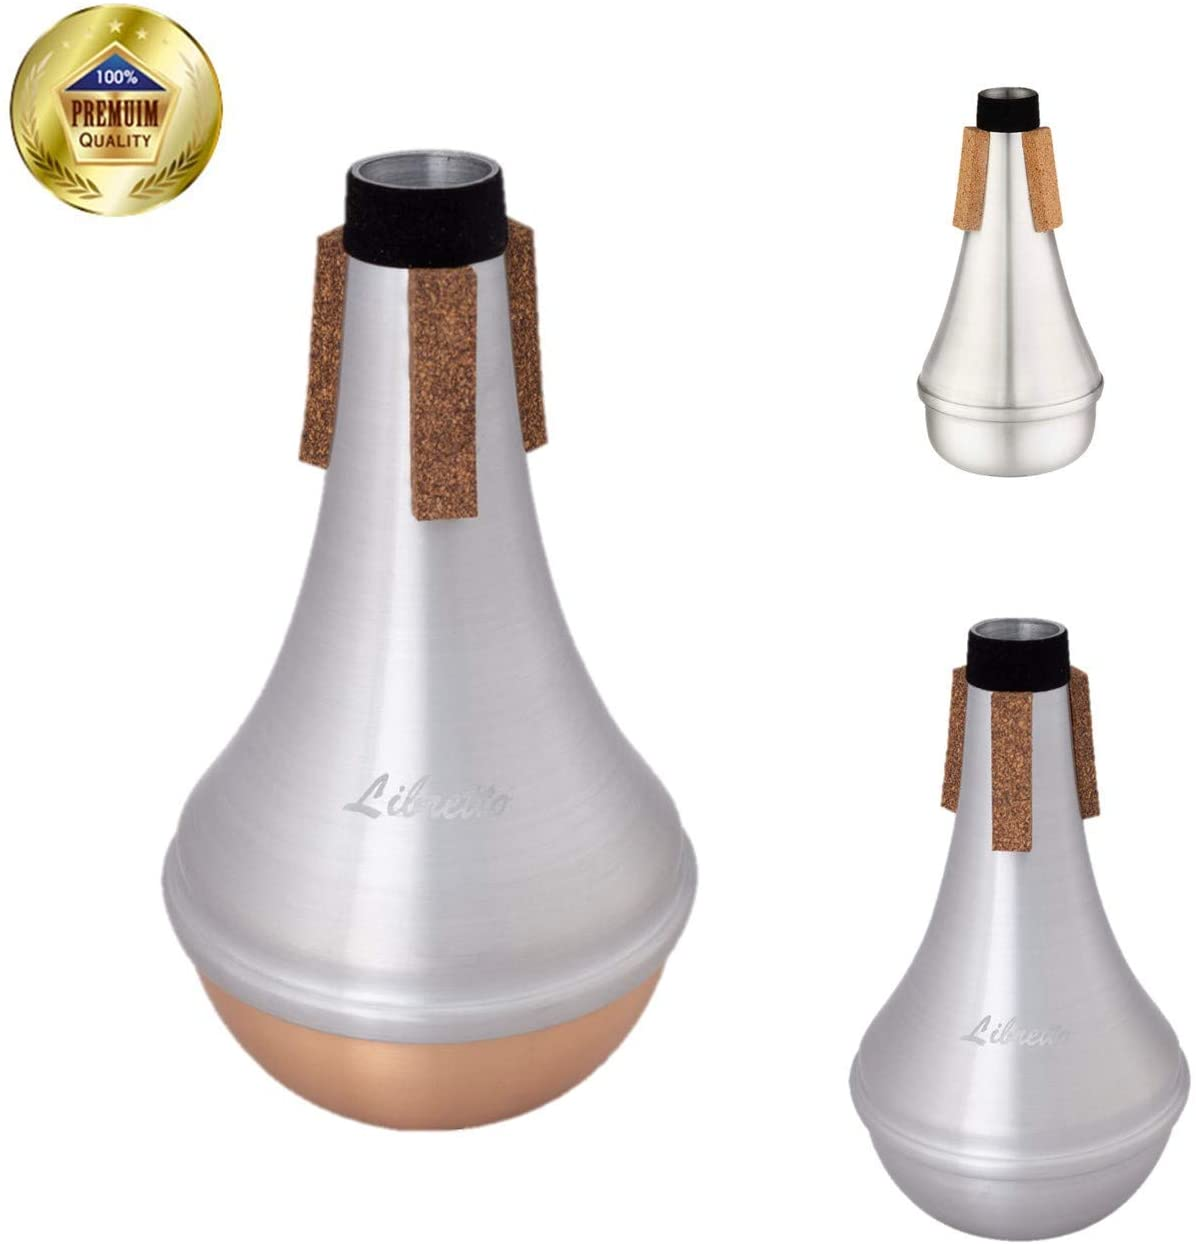 Libretto Trumpet Mute Special Bundle: AC011-1+ AC011+AC011-3, Excellent For Stage Performance!